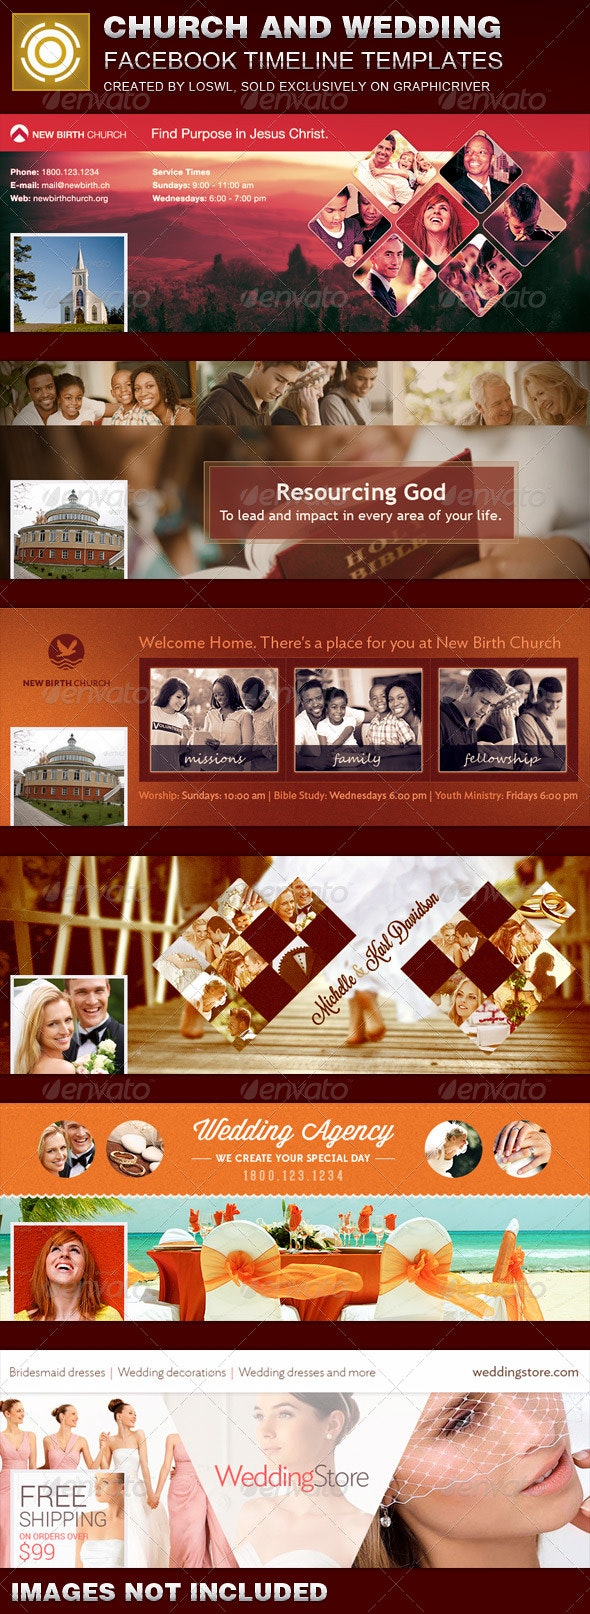 Bundle - Church and Wedding Facebook Timeline Templates - Facebook Timeline Covers Social Media